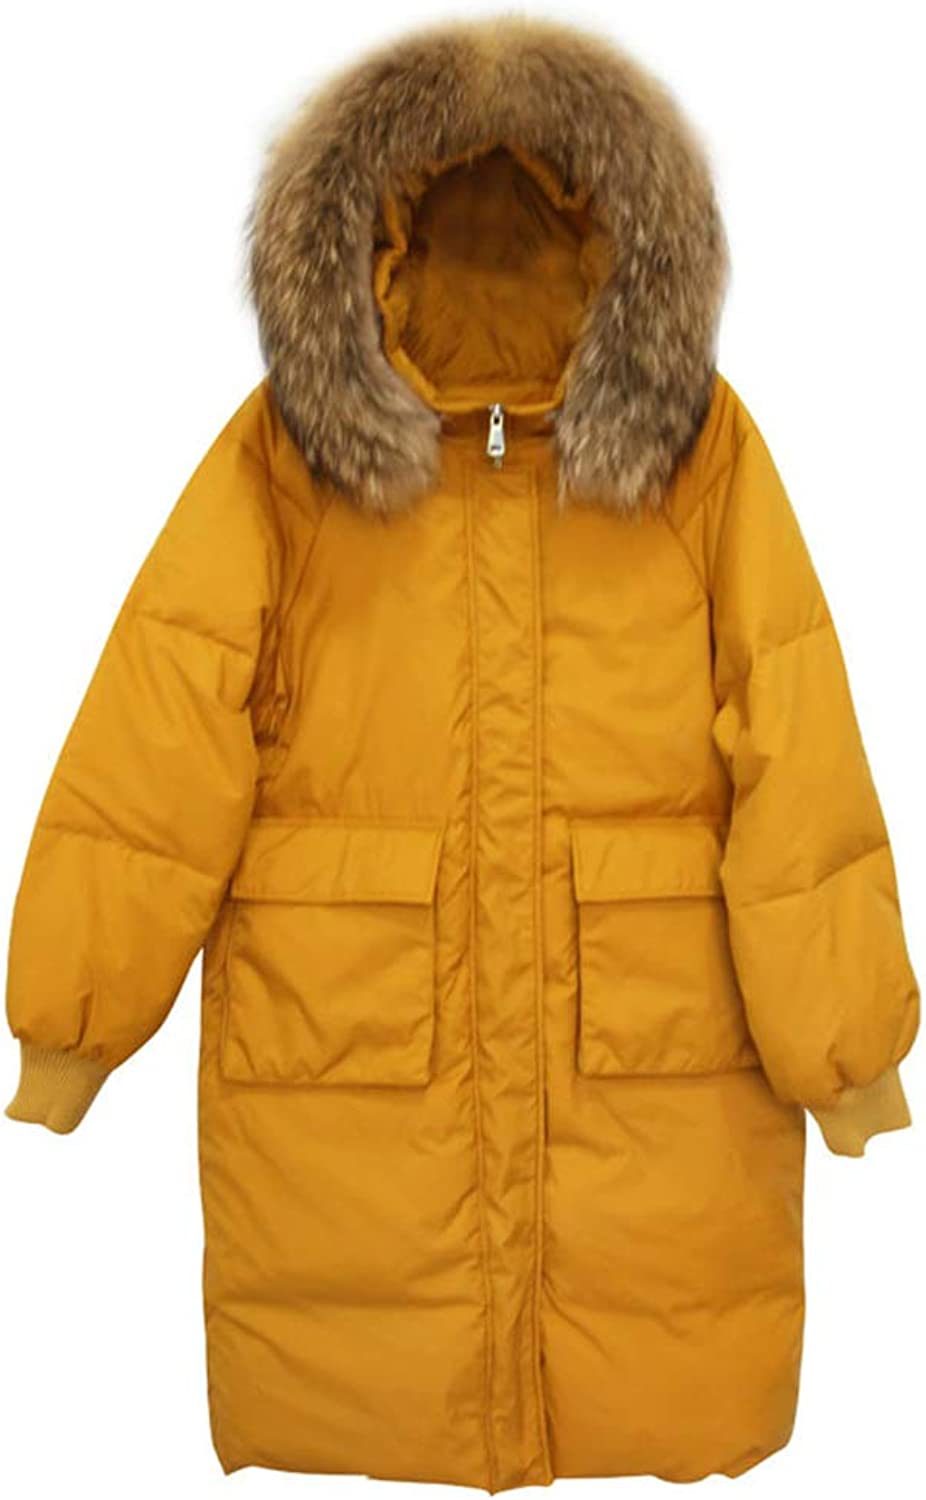 LQYRF Ladies Fur Collar Yellow Down Jacket Zipper Loose 51%  55% White Duck Down